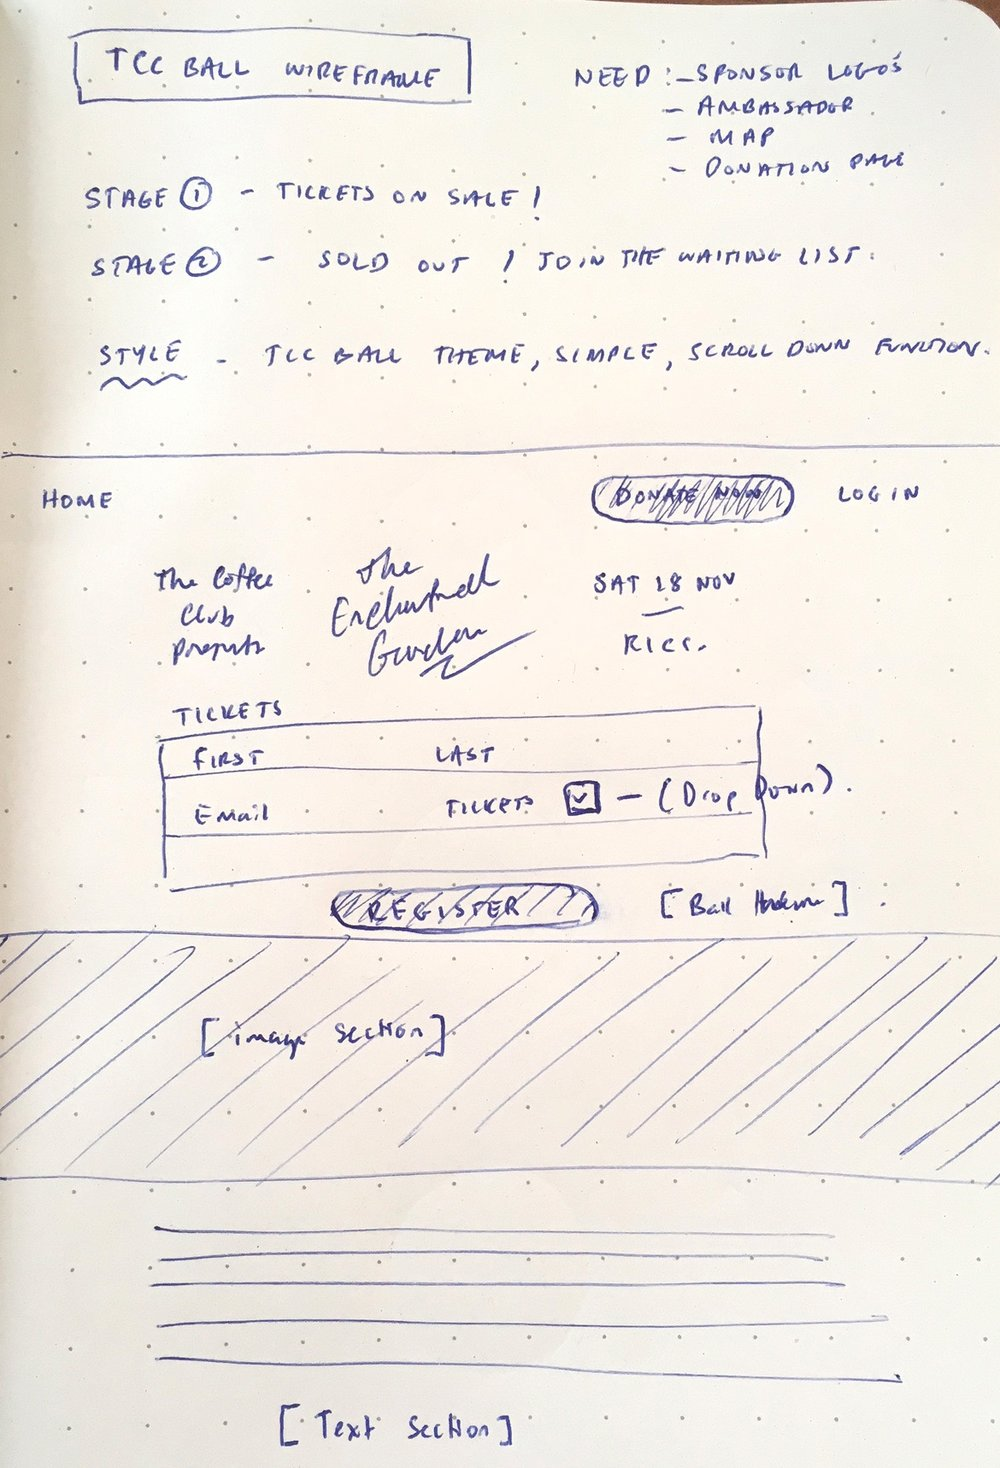 Wireframe Design - Here's one of my first sketches of the wireframe from our first meeting.